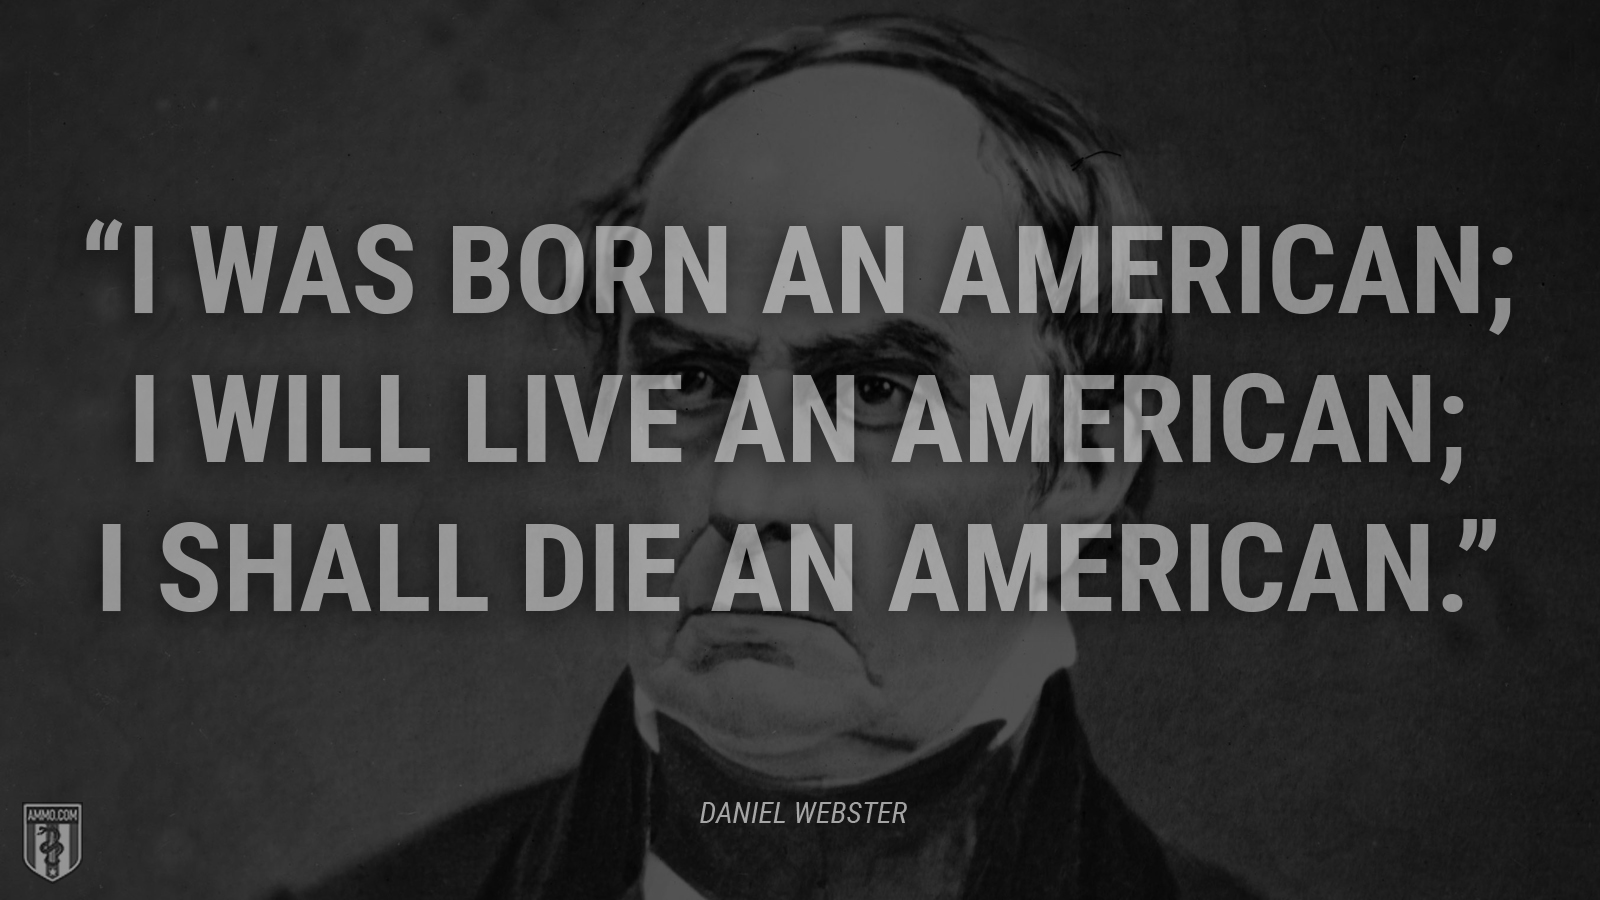 """I was born an American; I will live an American; I shall die an American."" - Daniel Webster"